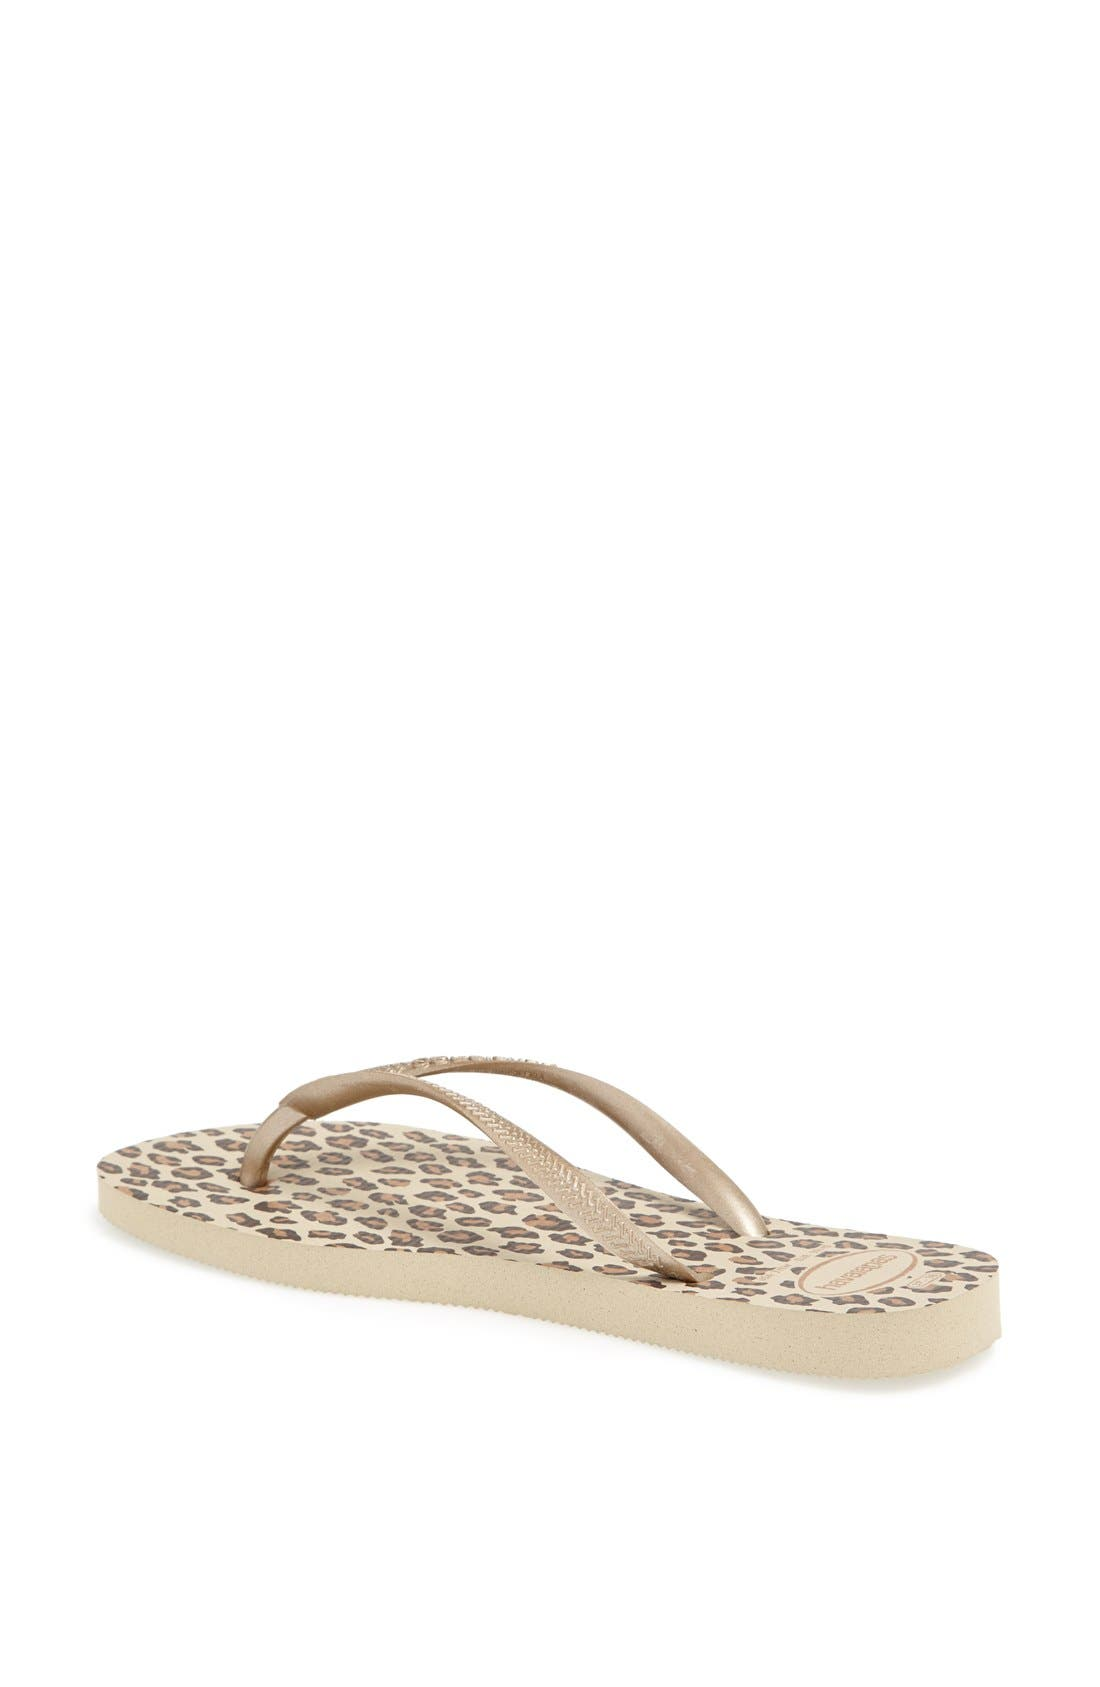 Alternate Image 2  - Havaianas 'Slim Animal Print' Flip Flop (Women)